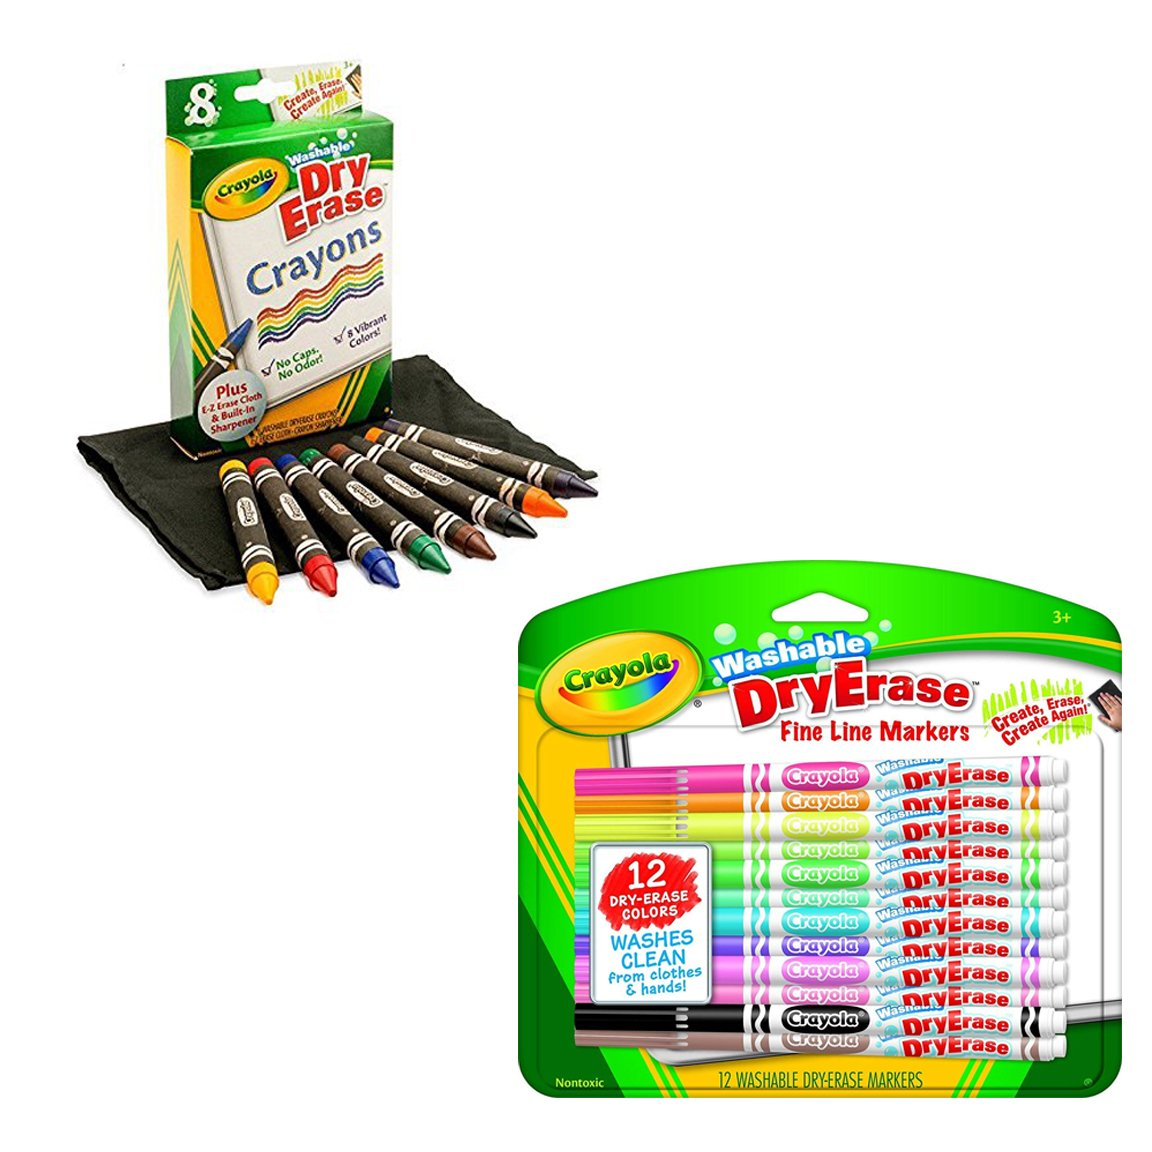 Crayola Washable Dry-Erase Markers & Dry-Erase Crayons with a CSS Coloring Book by Crayola